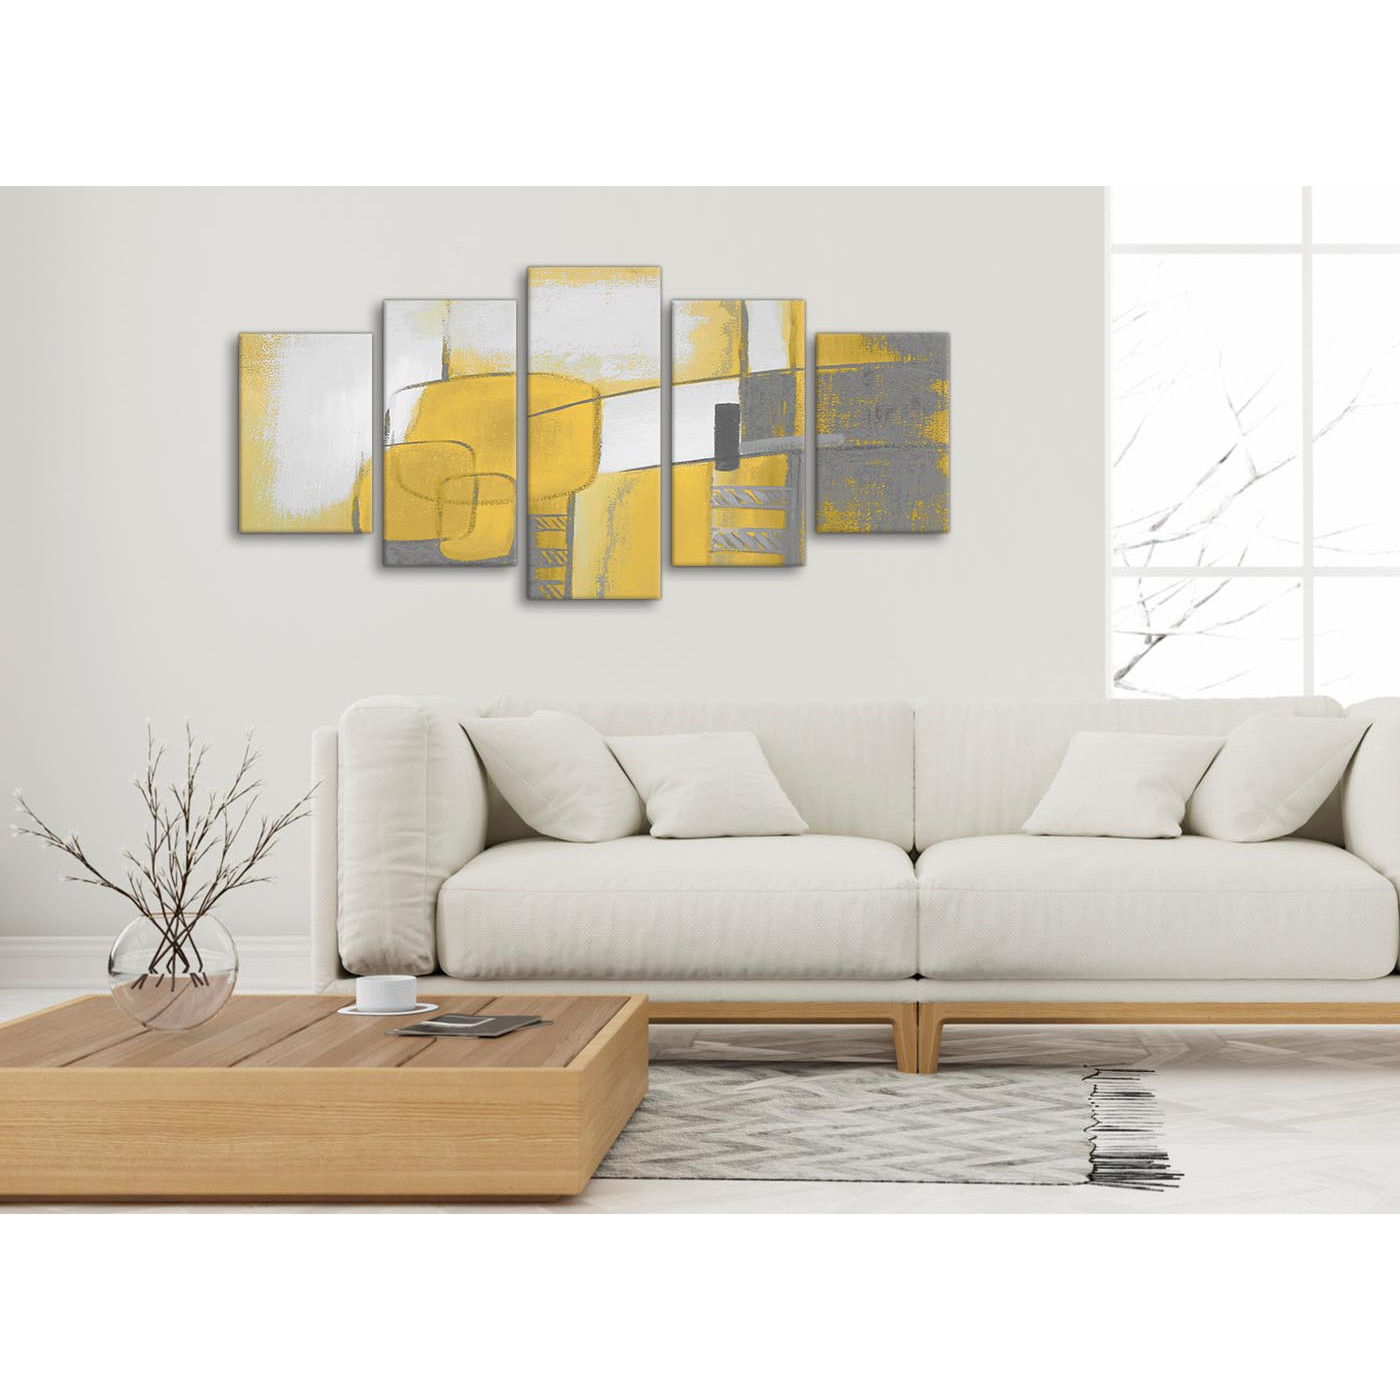 Display gallery item 3 set of 5 panel mustard yellow grey painting abstract bedroom canvas pictures decor 5419 display gallery item 4